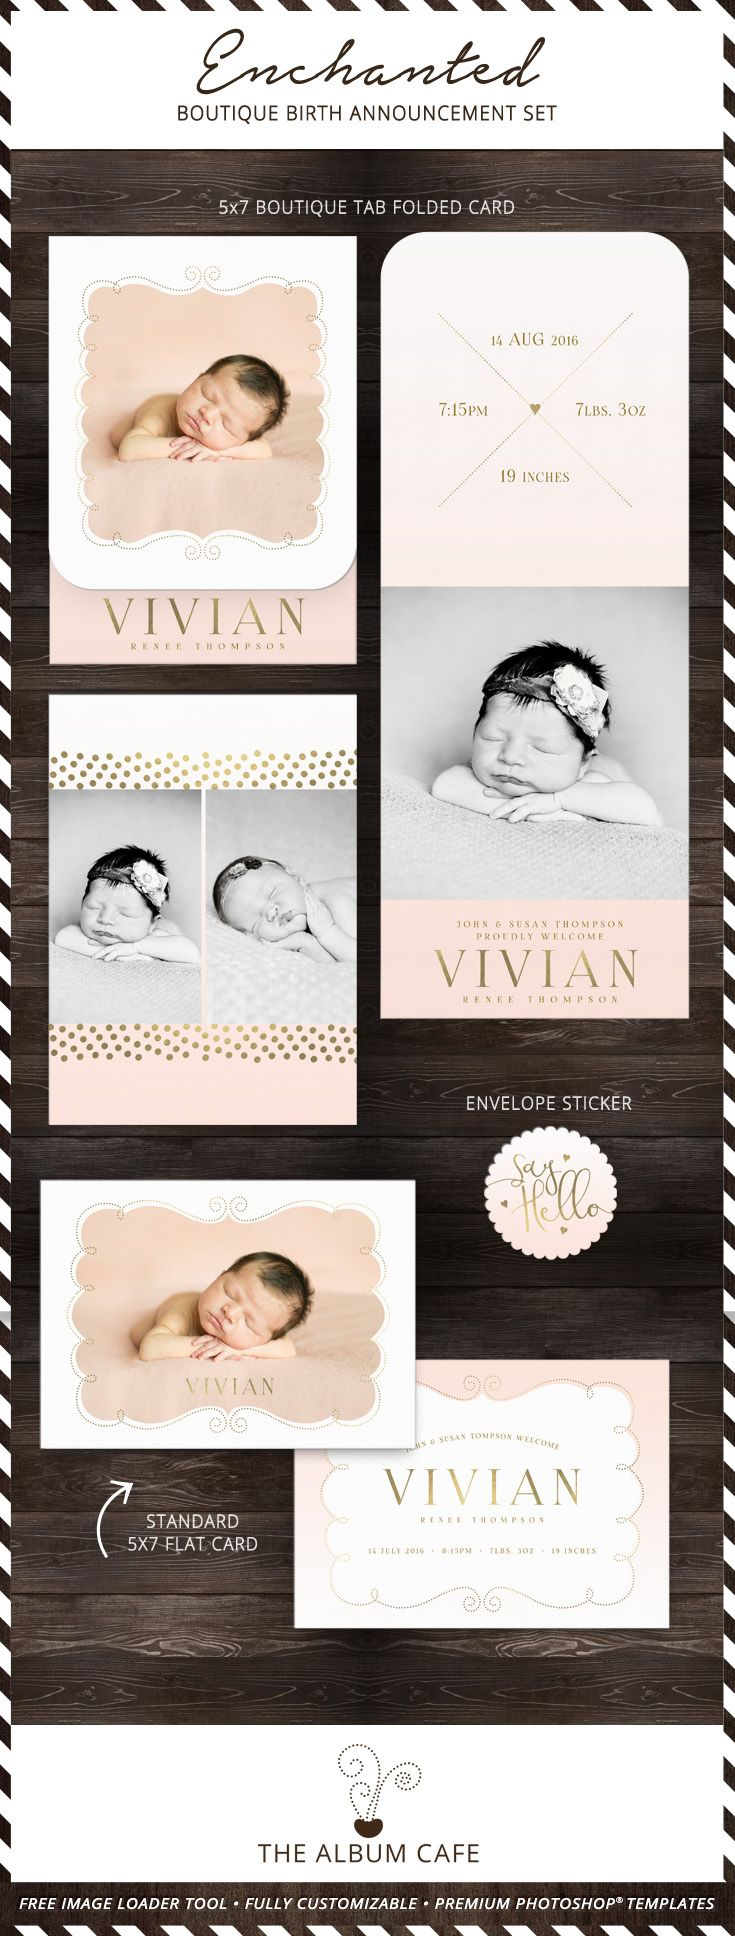 34 best Birth Announcements images – High End Birth Announcements